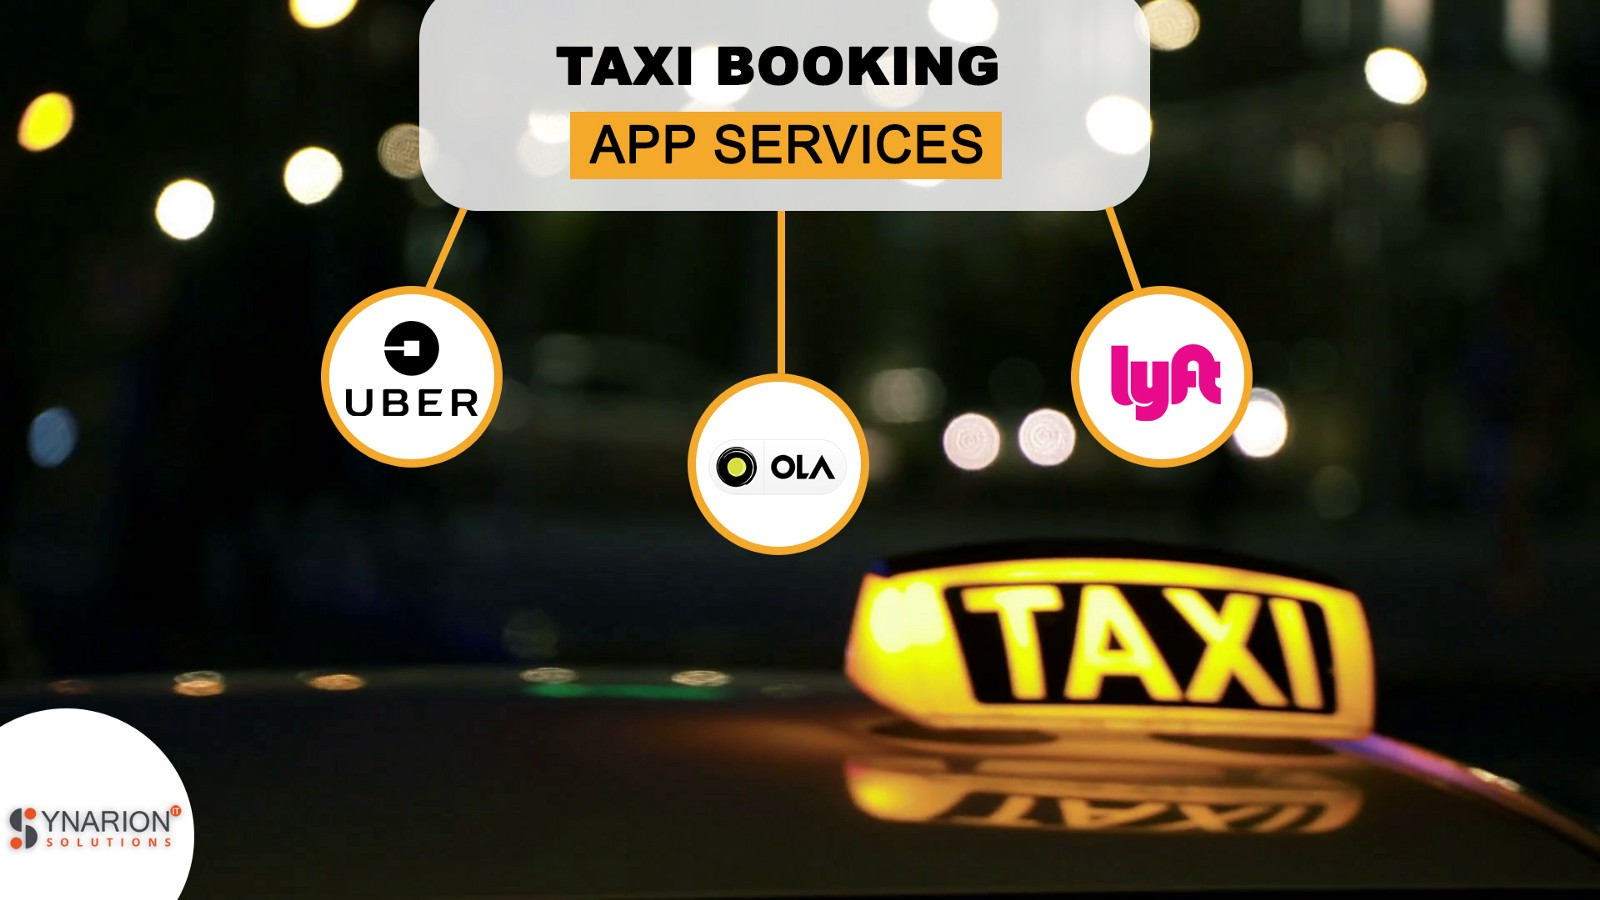 Taxi Booking App Services: One Of The Most Growing Business